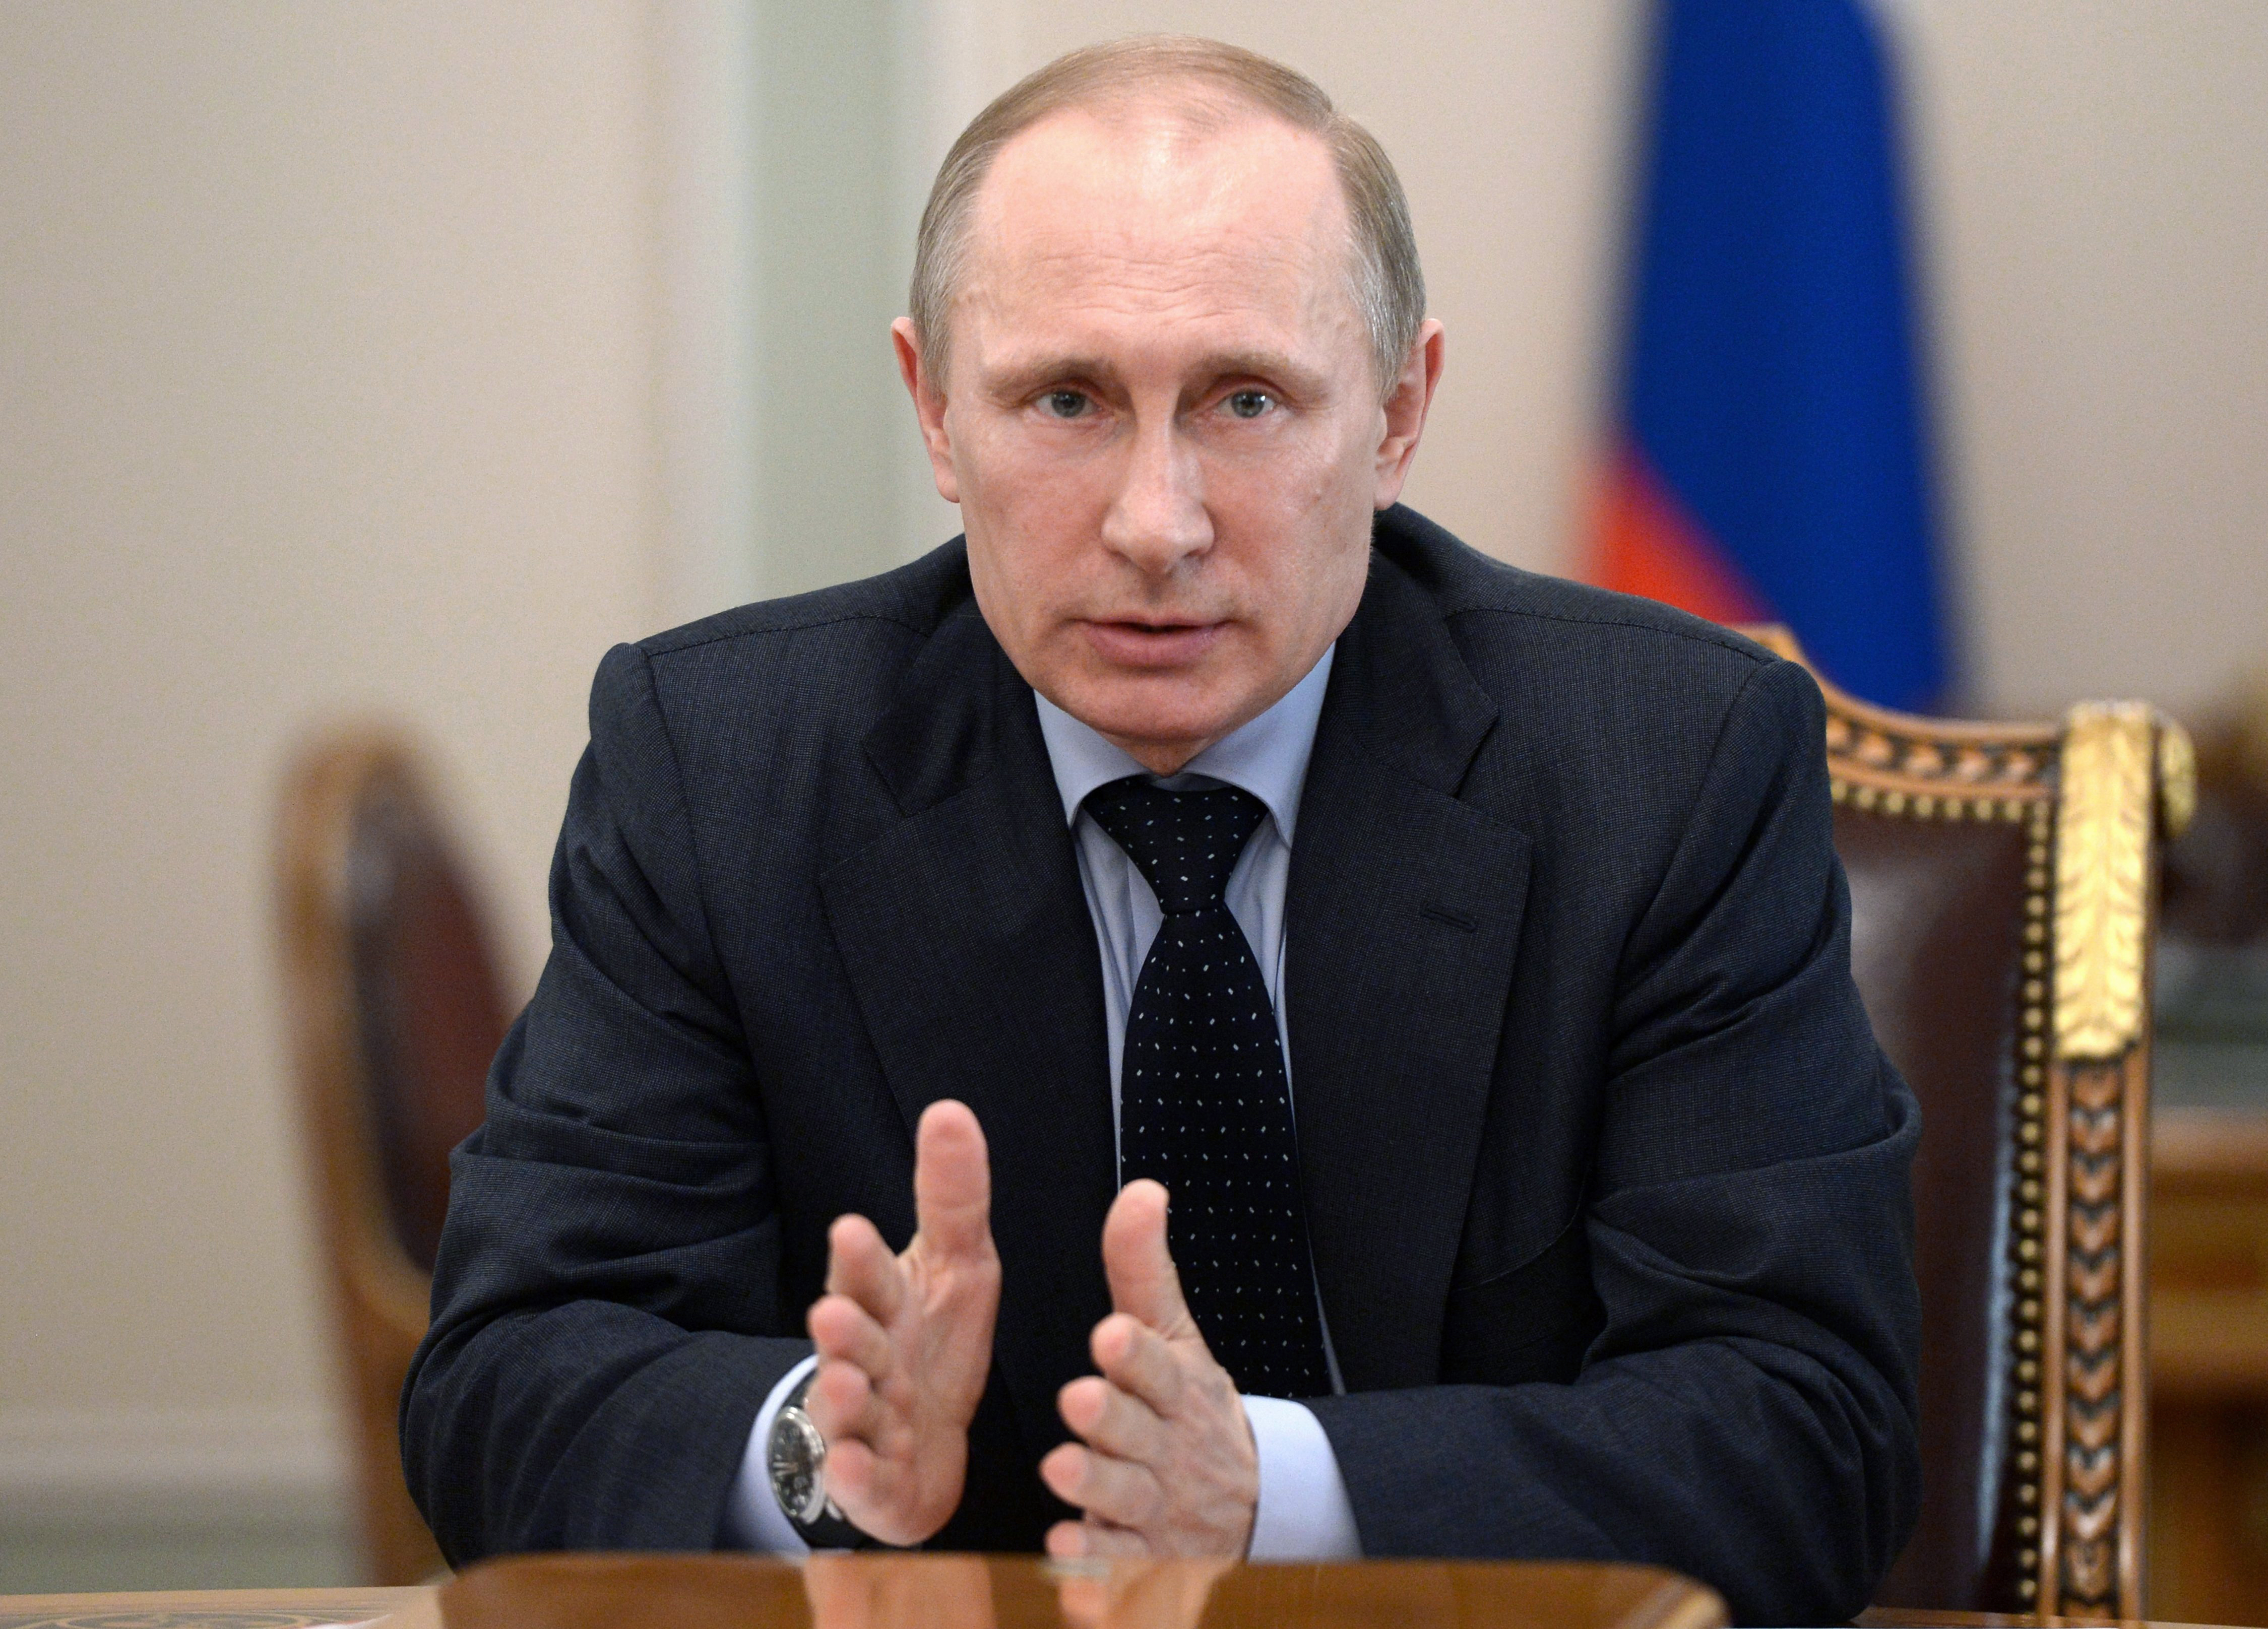 Russian President Vladimir Putin speaks at a Security Council meeting in the Kremlin in Moscow, Russia, Friday, March 28, 2014.